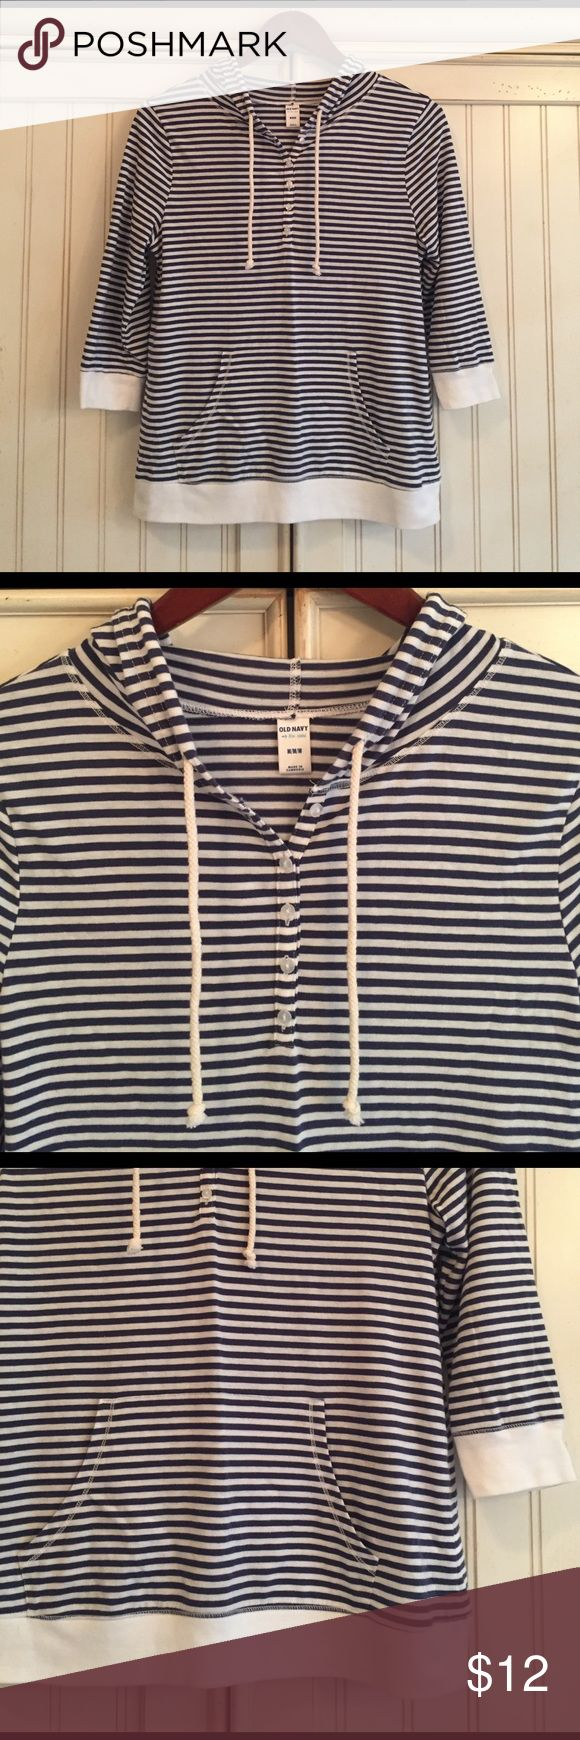 Old Navy Stripe Hoodie Old Navy nautical-style striped hoodie with blue and white. White band at bottom and at end of sleeves. Rope ties to tighten hoodie. 5 buttons down front. Only worn 1x and in great condition. Size: Medium. Old Navy Tops